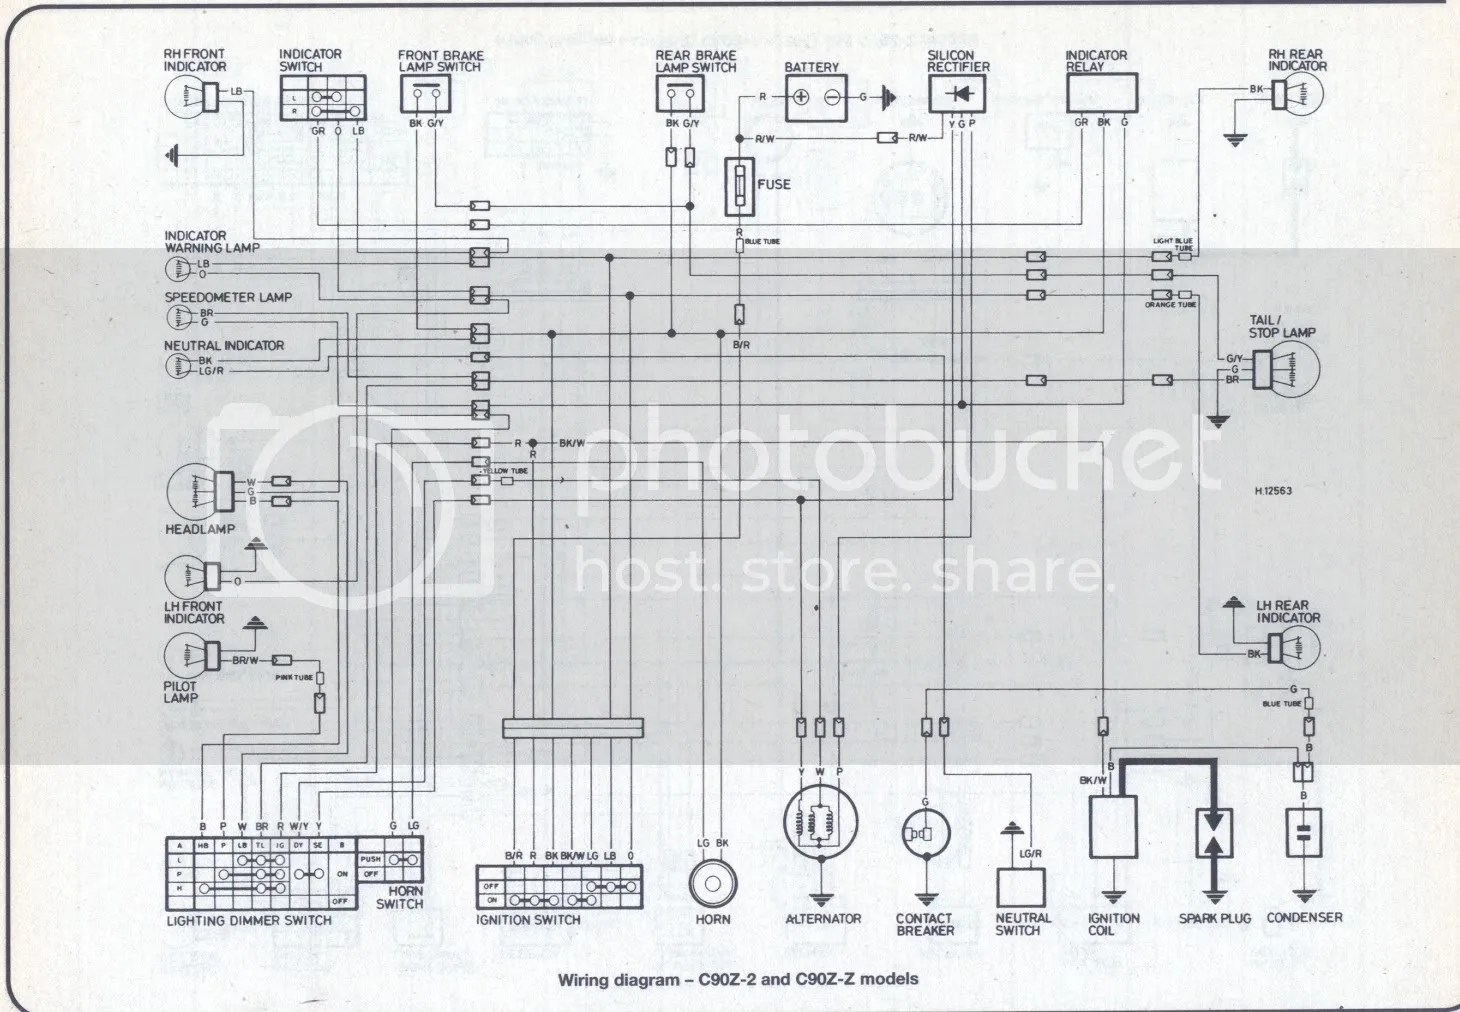 Honda C90 Wiring Diagram 12v Auto Electrical 1996 Grand Cherokee Alternator Harness Related With